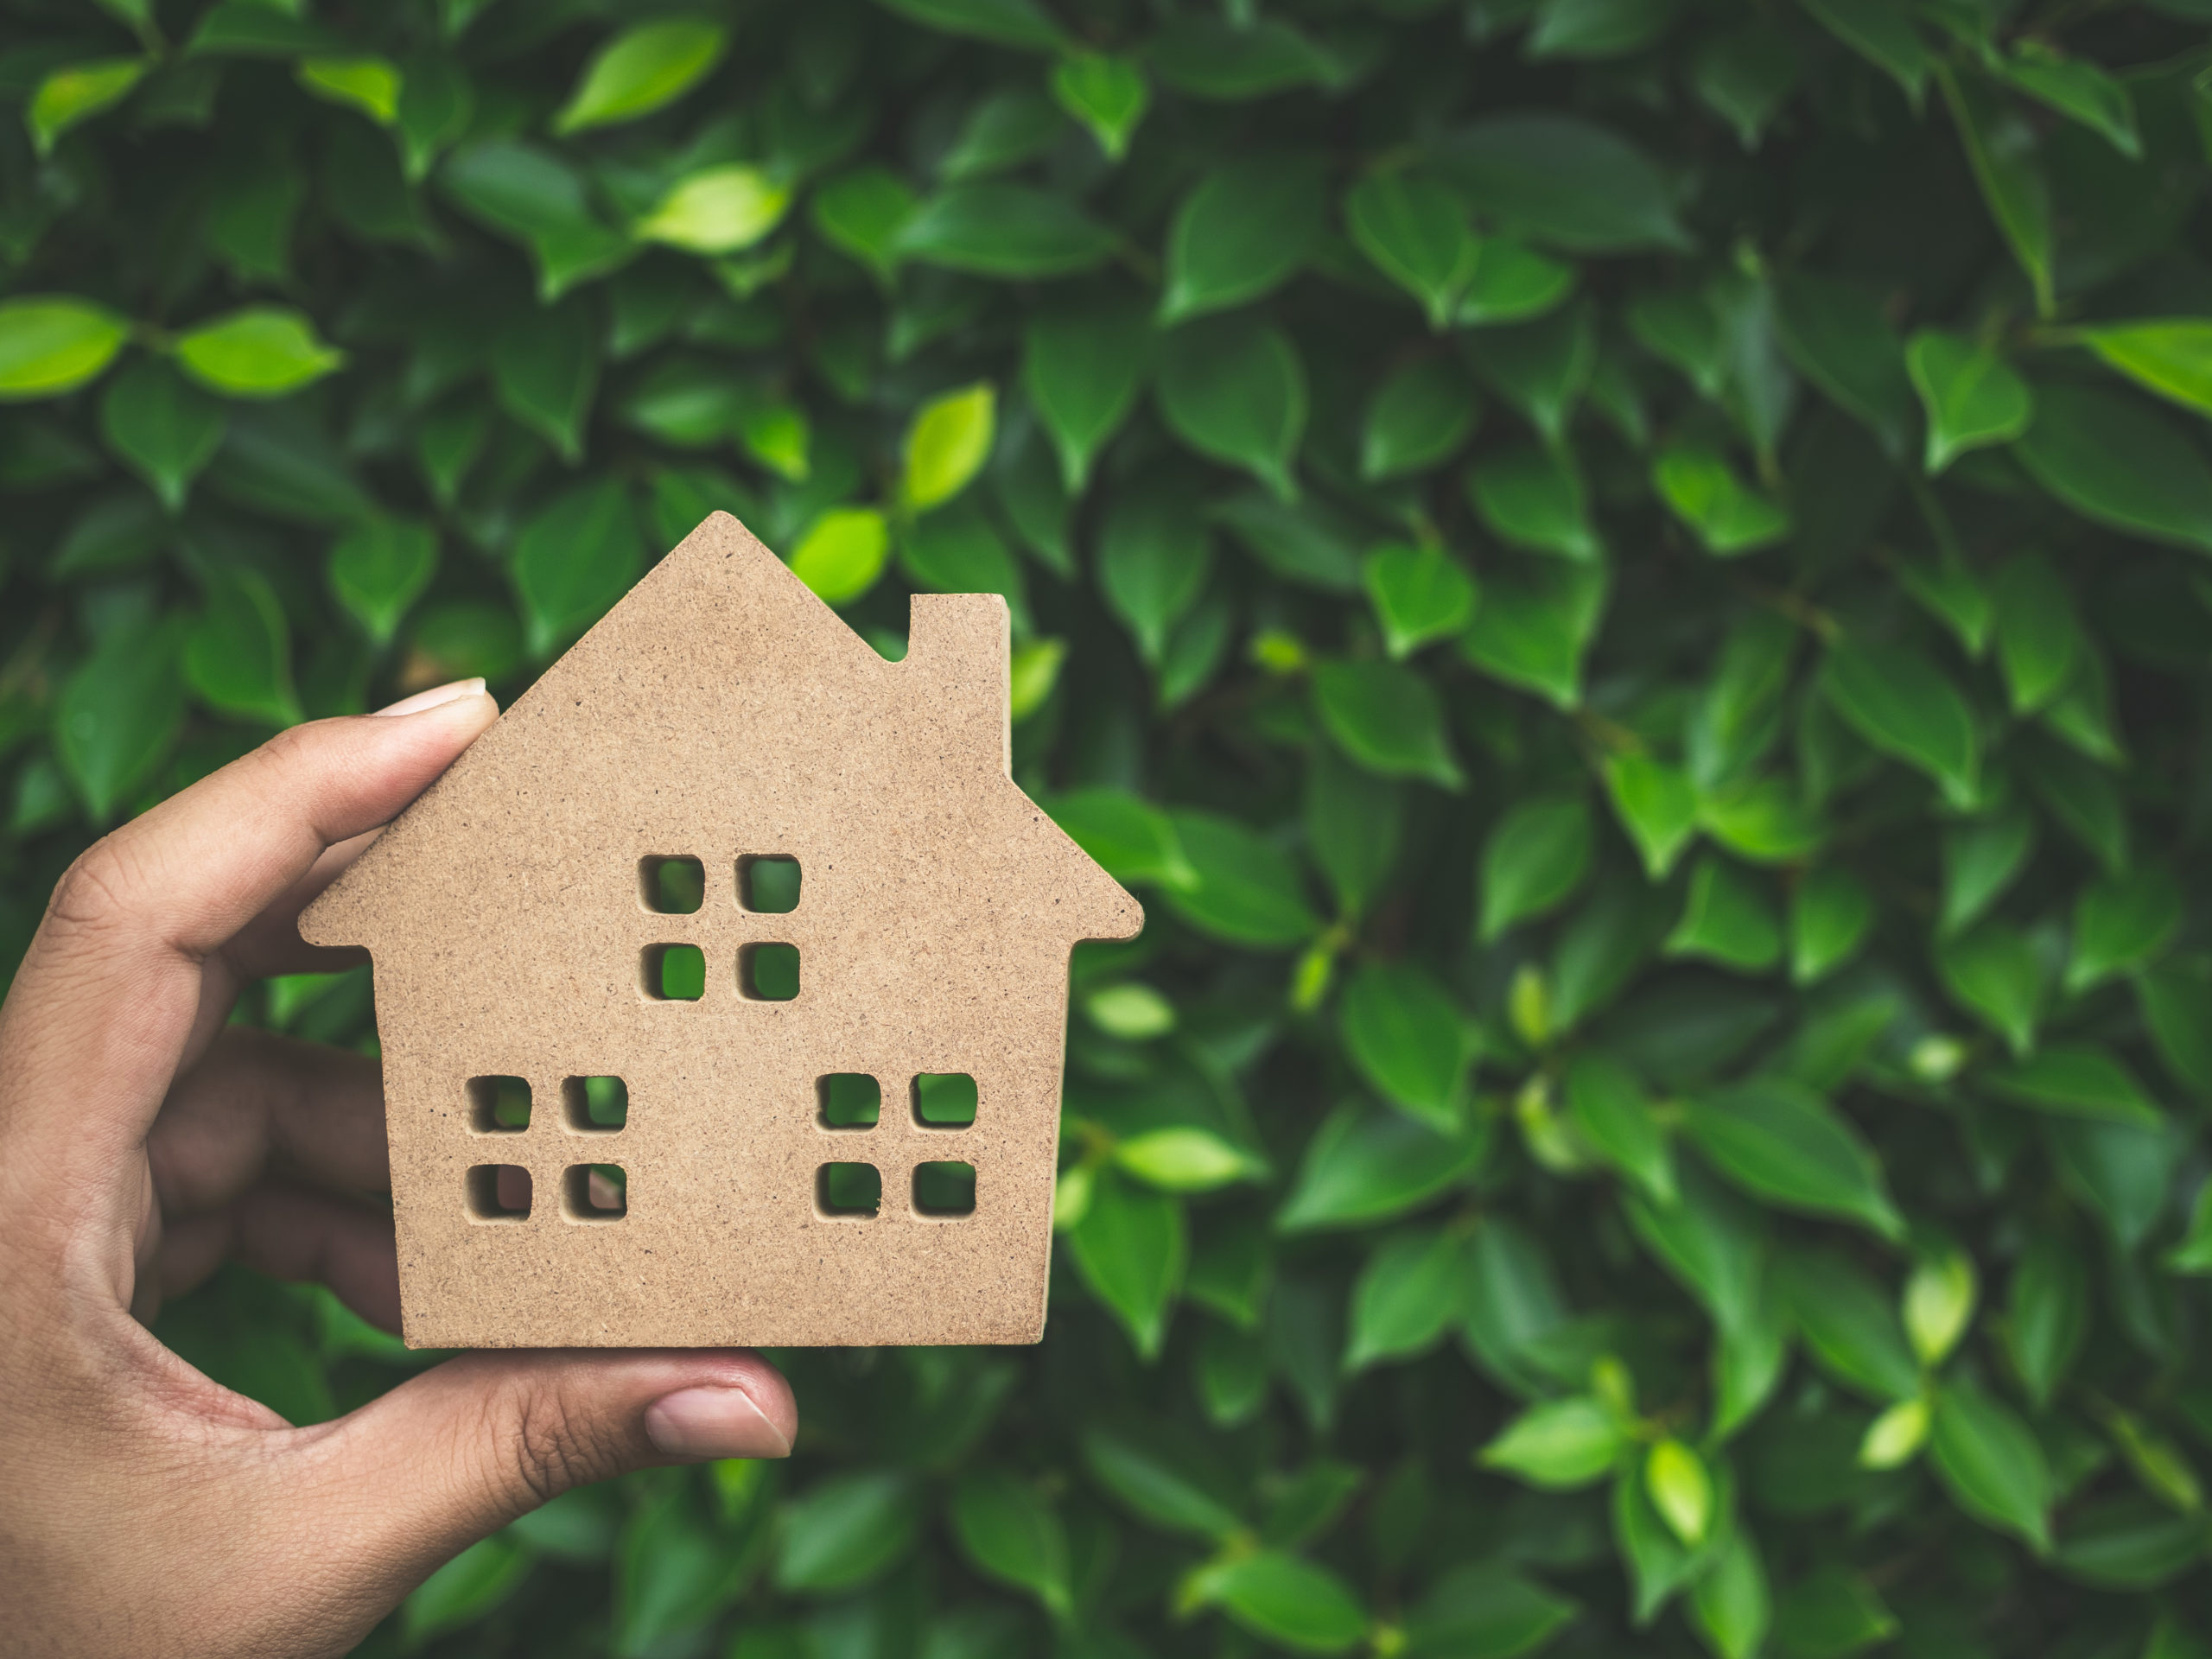 Industry welcomes UK's 'green recovery' plans for jobs and housing